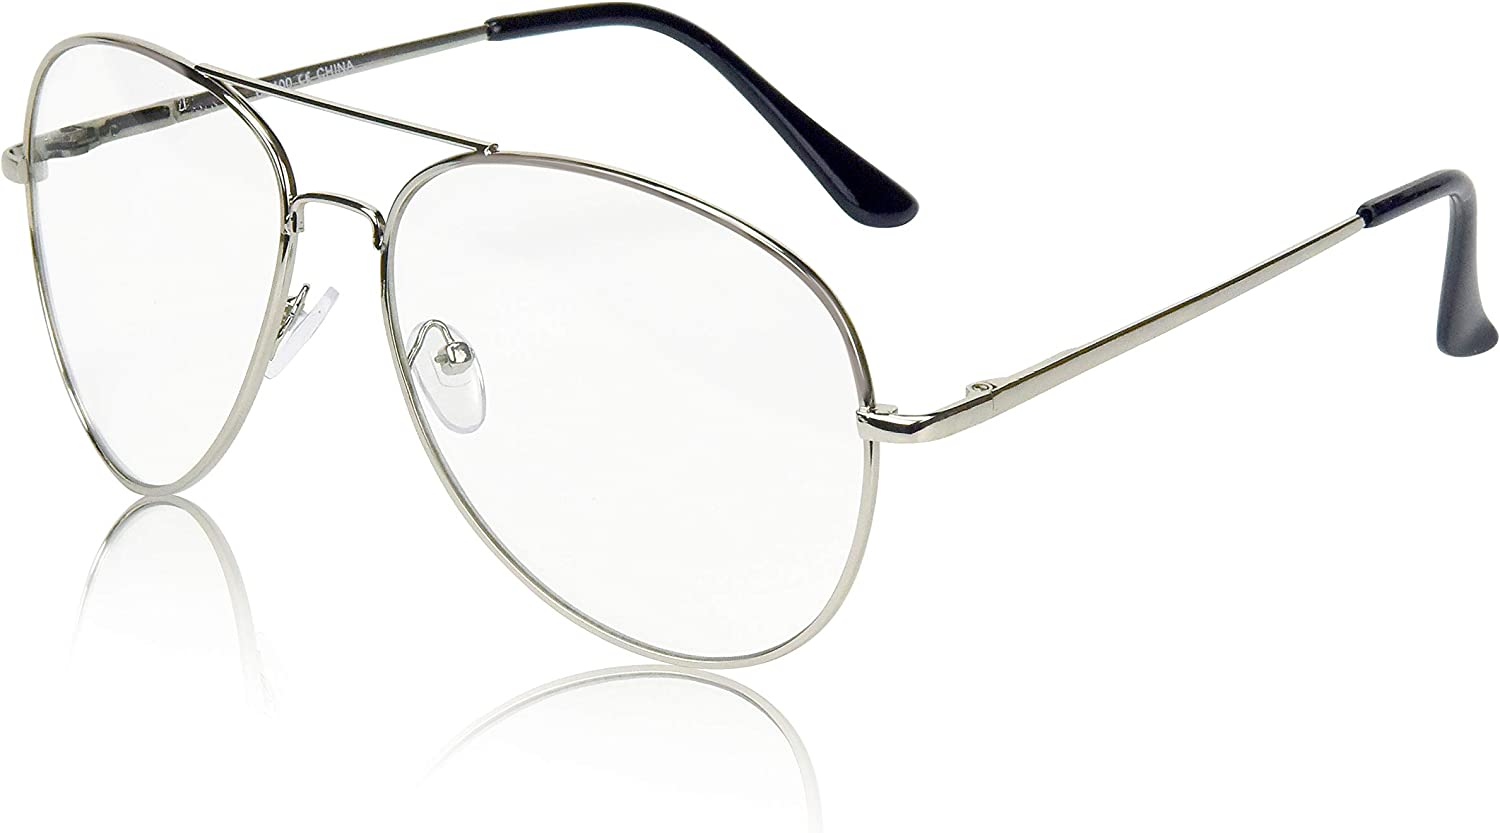 Sunny Pro Aviator Glasses Oversized Metal Frame Clear Lens UV400 Protection